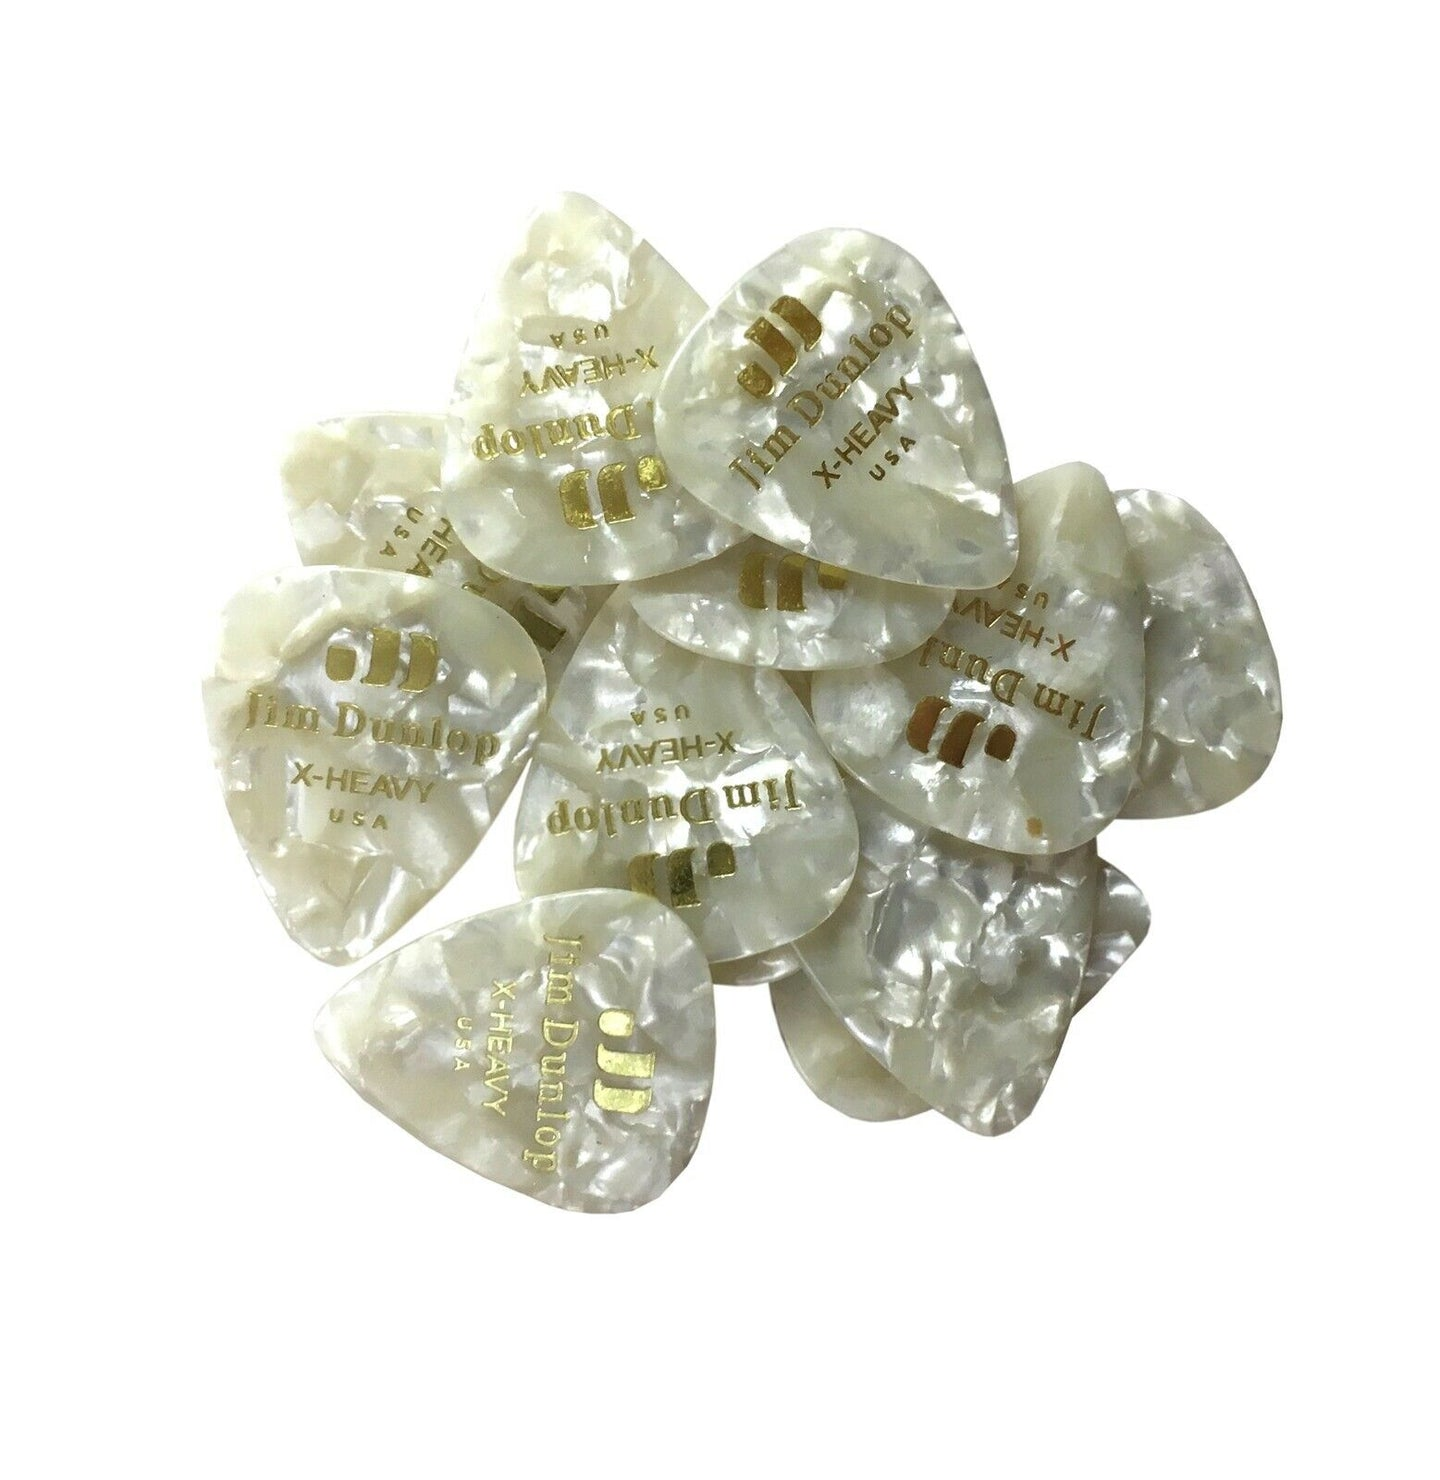 Dunlop Guitar Picks  12 Pack  Celluloid  White Pearl  Extra Heavy.